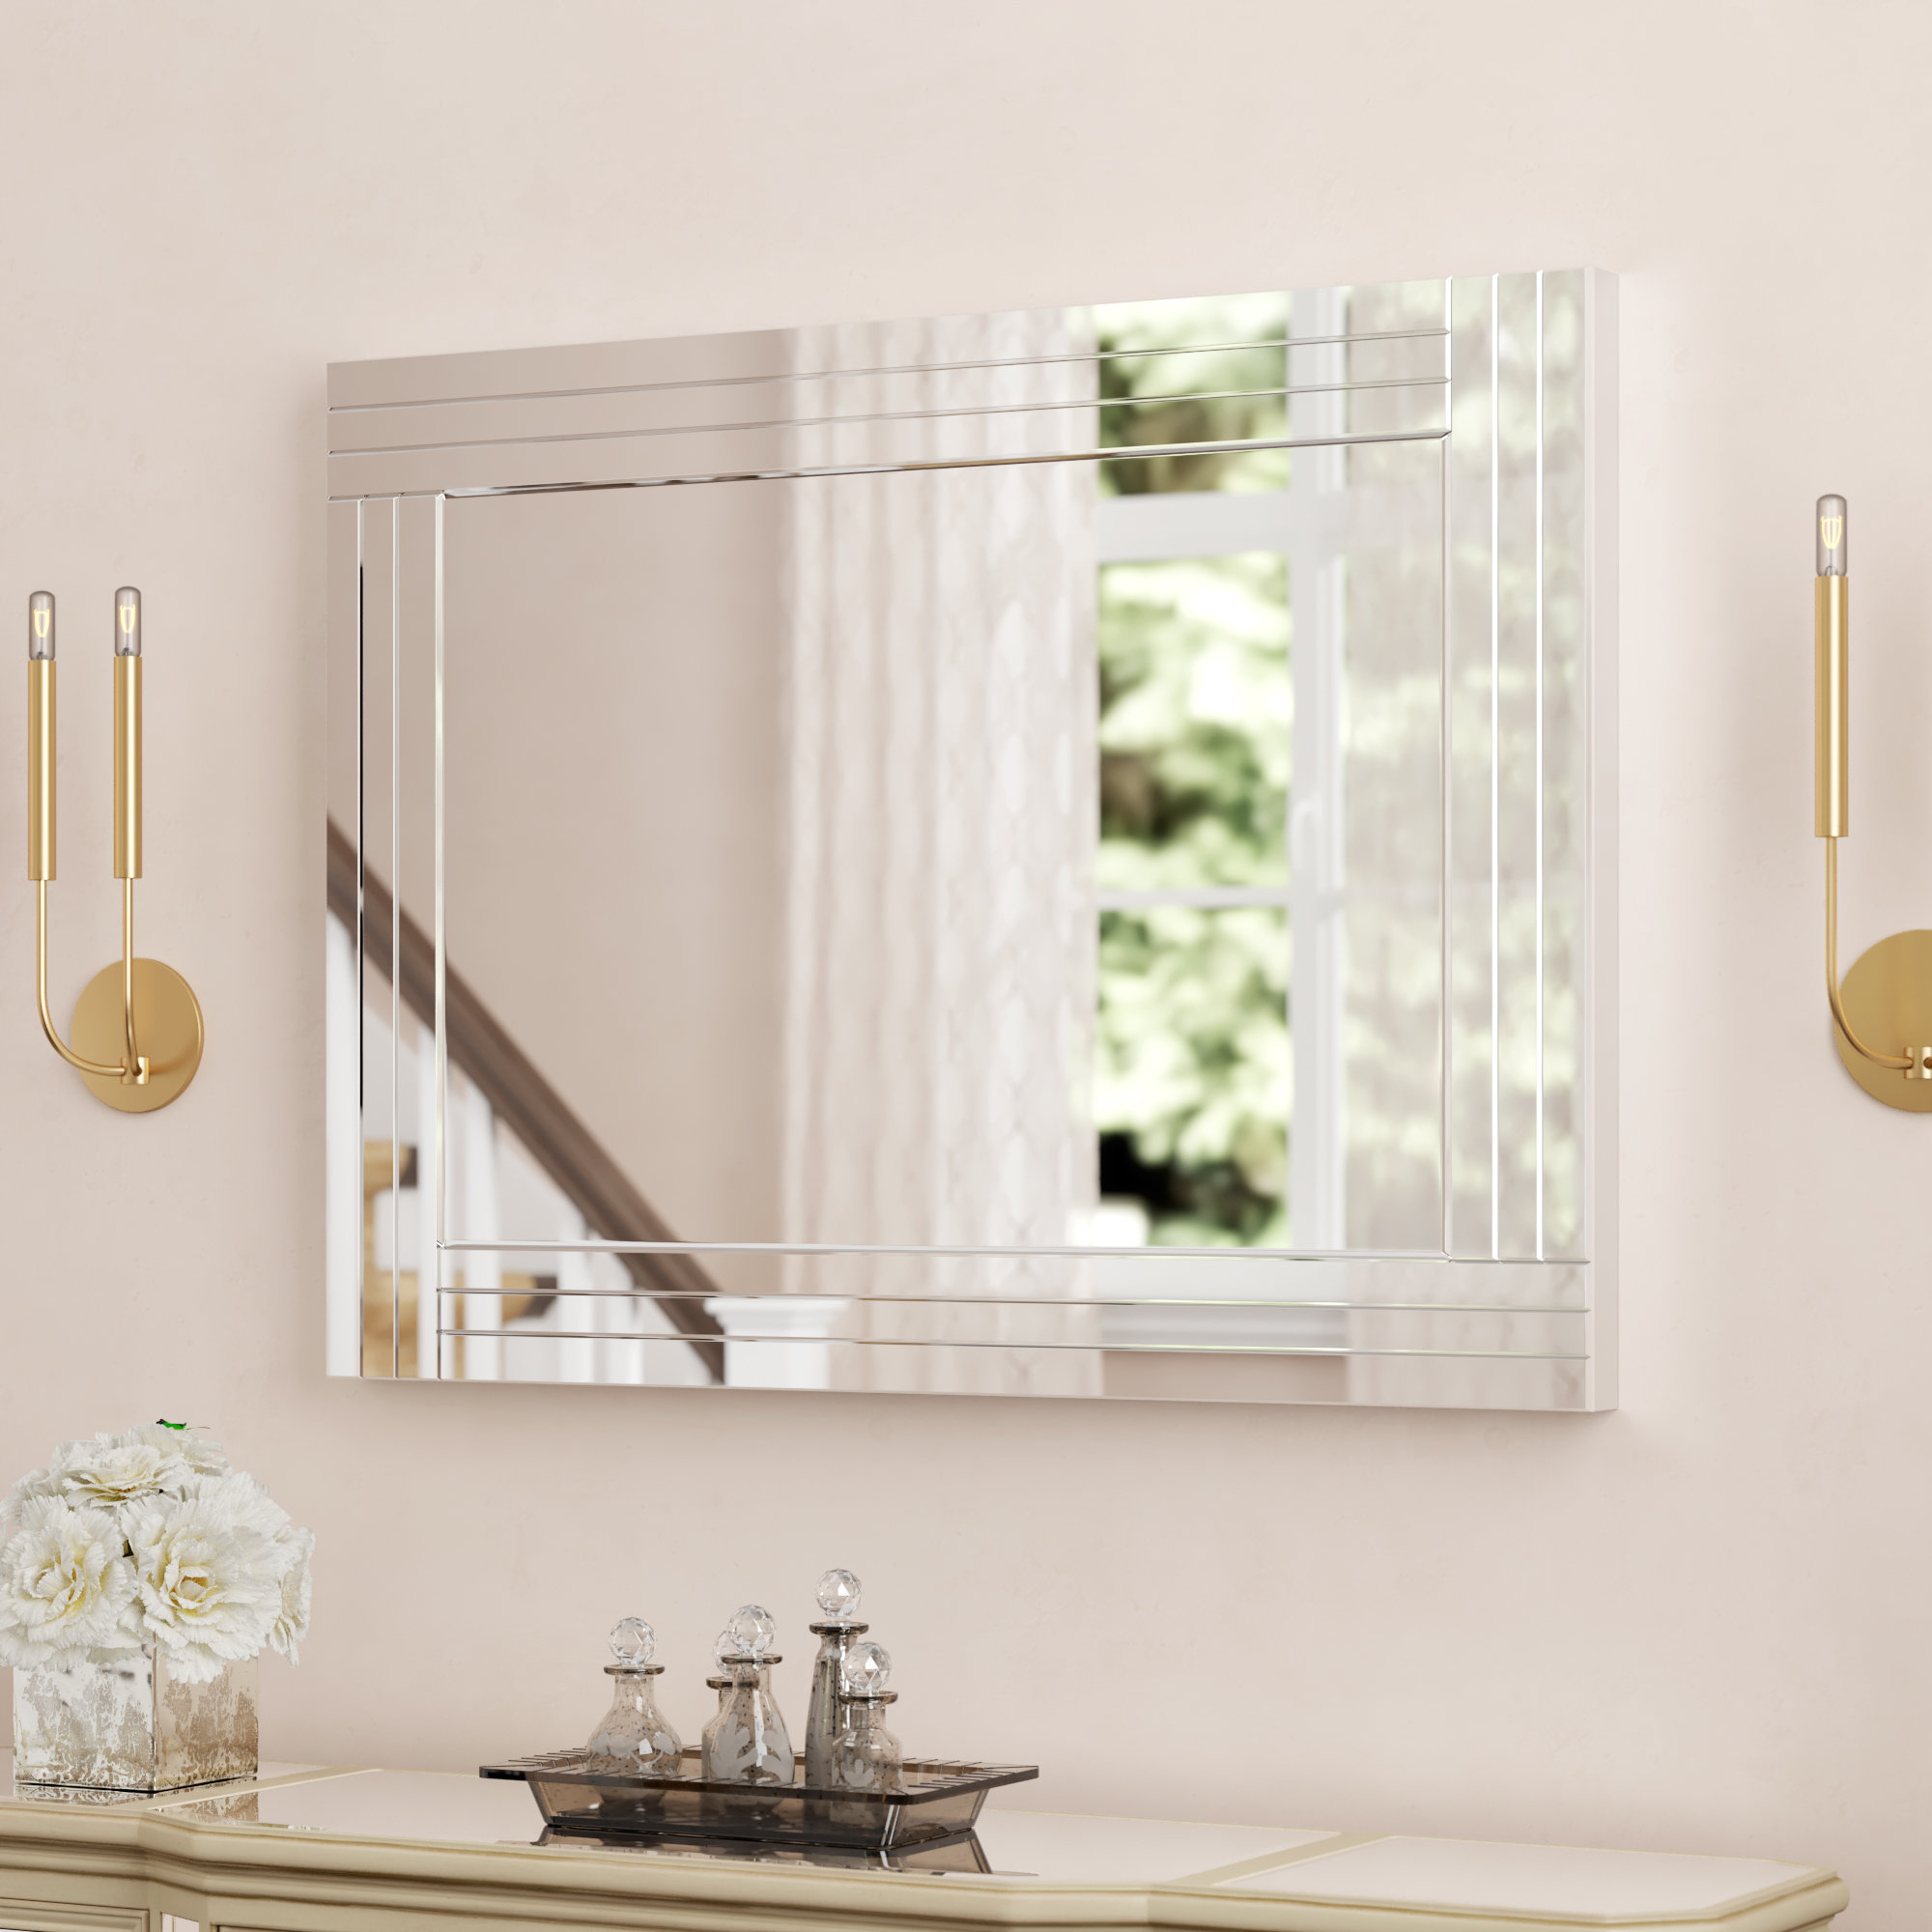 Widely Used Colton Modern & Contemporary Wall Mirrors Inside Willa Arlo Interiors Mattie Modern & Contemporary Wall Mirror (View 7 of 20)